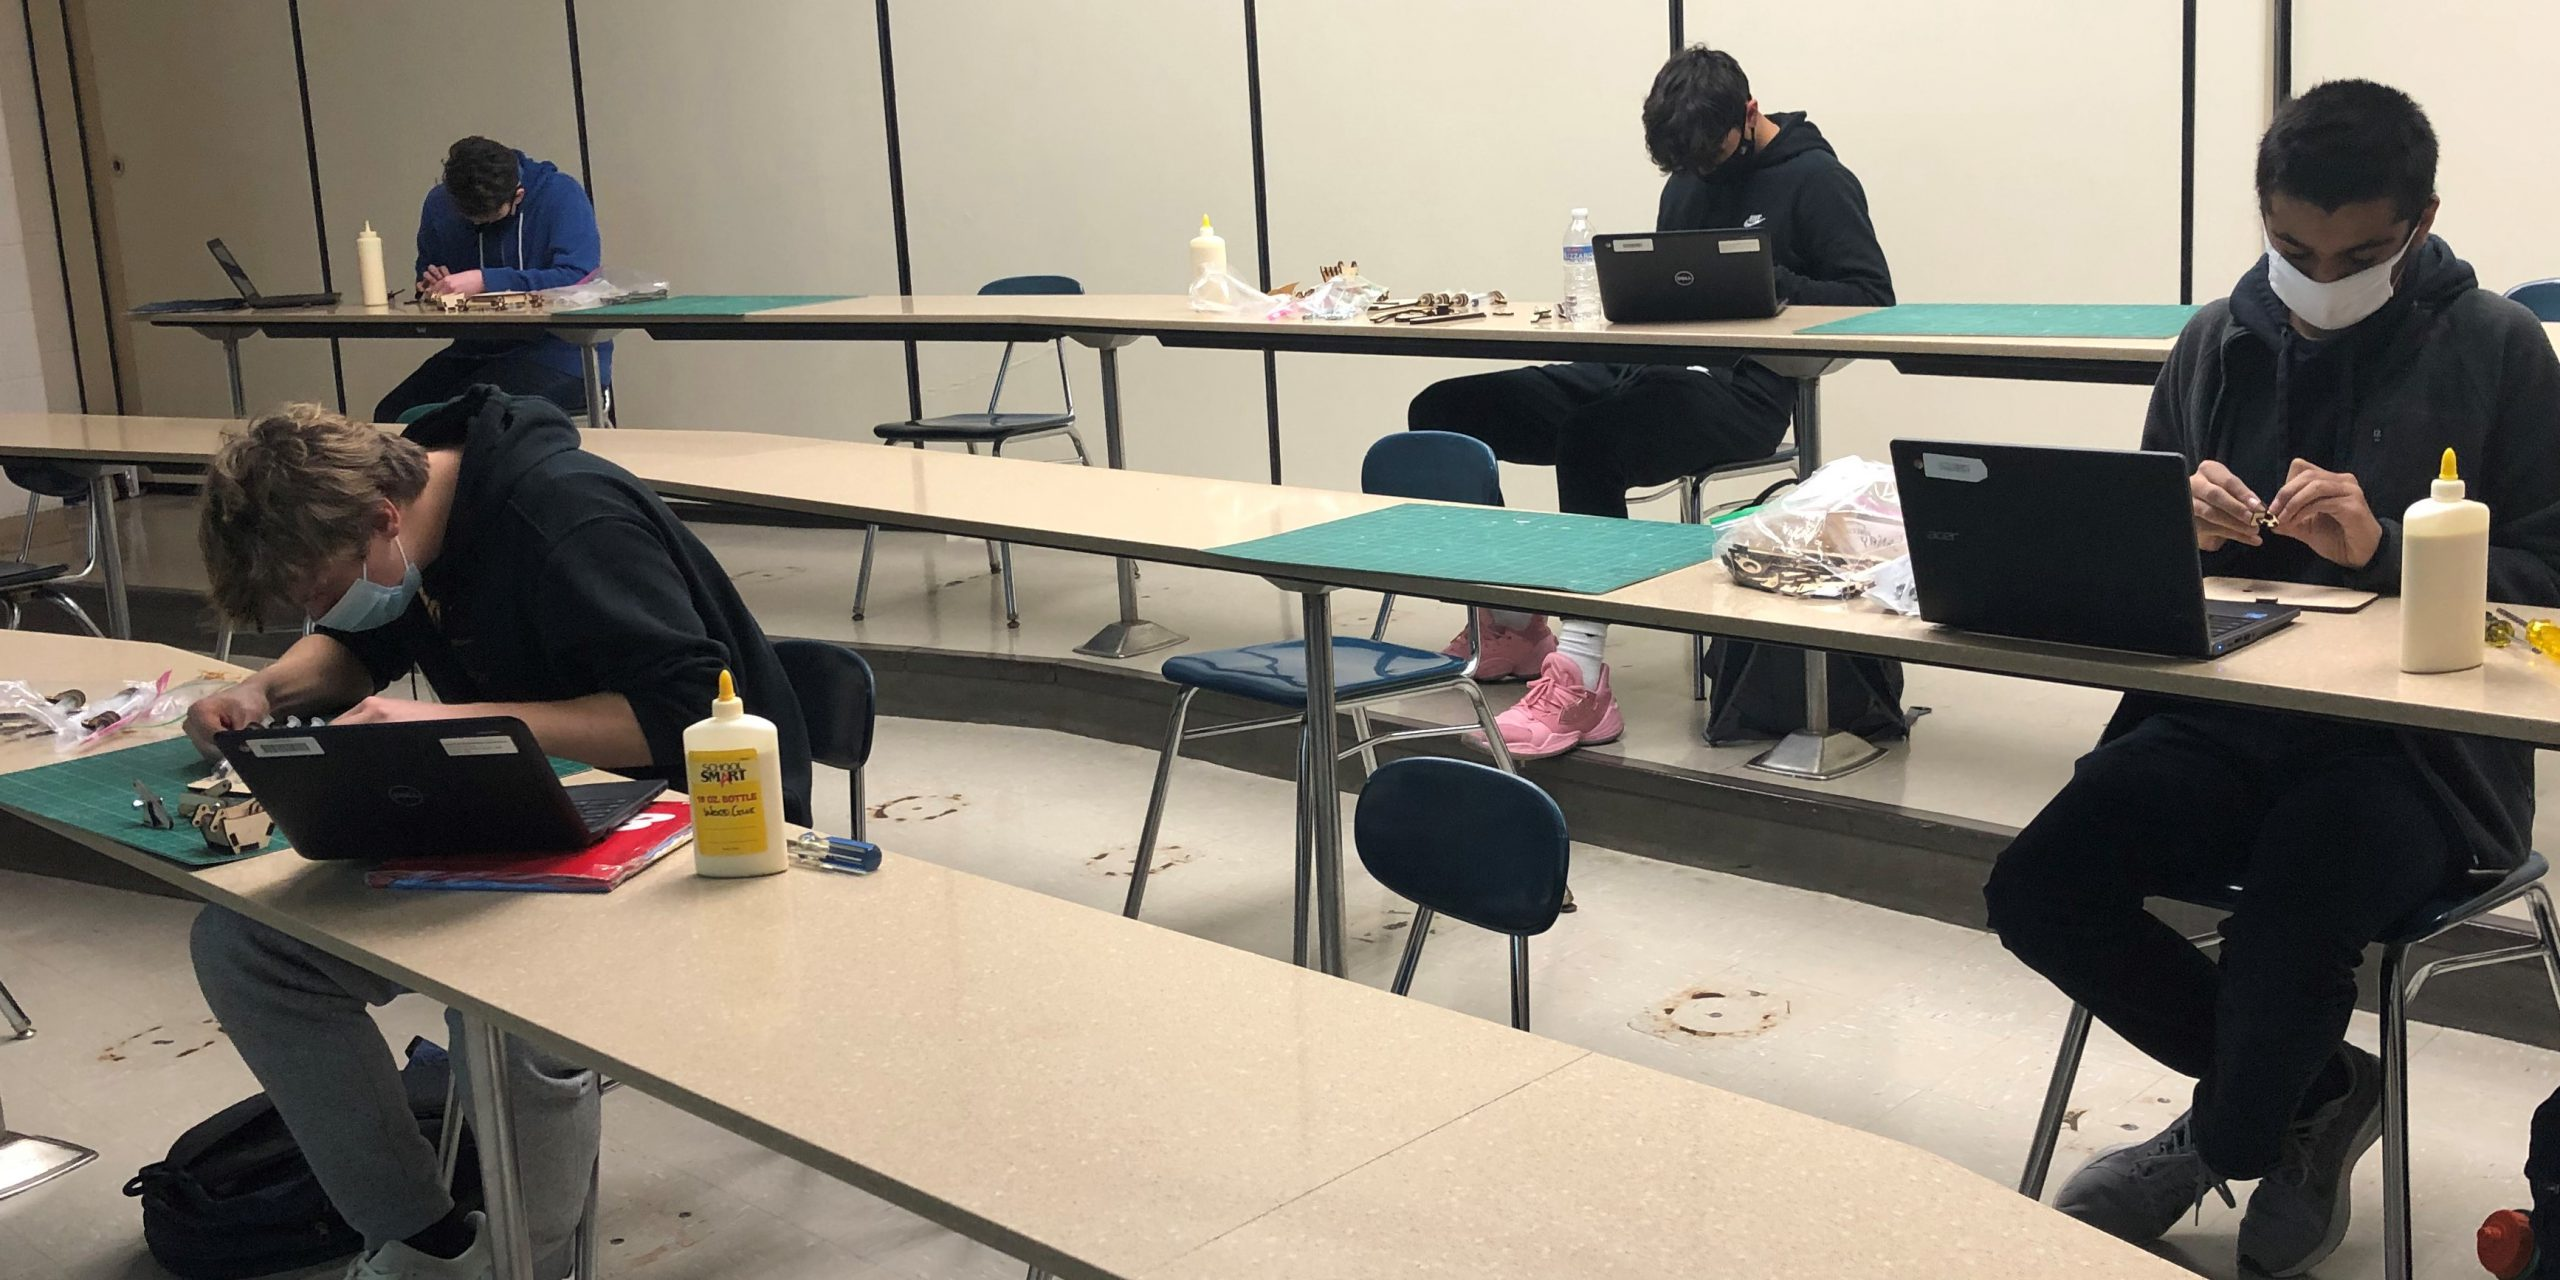 Students in Mr. Dillman's Principles of Engineering Class build model steam shovels, applying principles learned during the hydraulics unit.